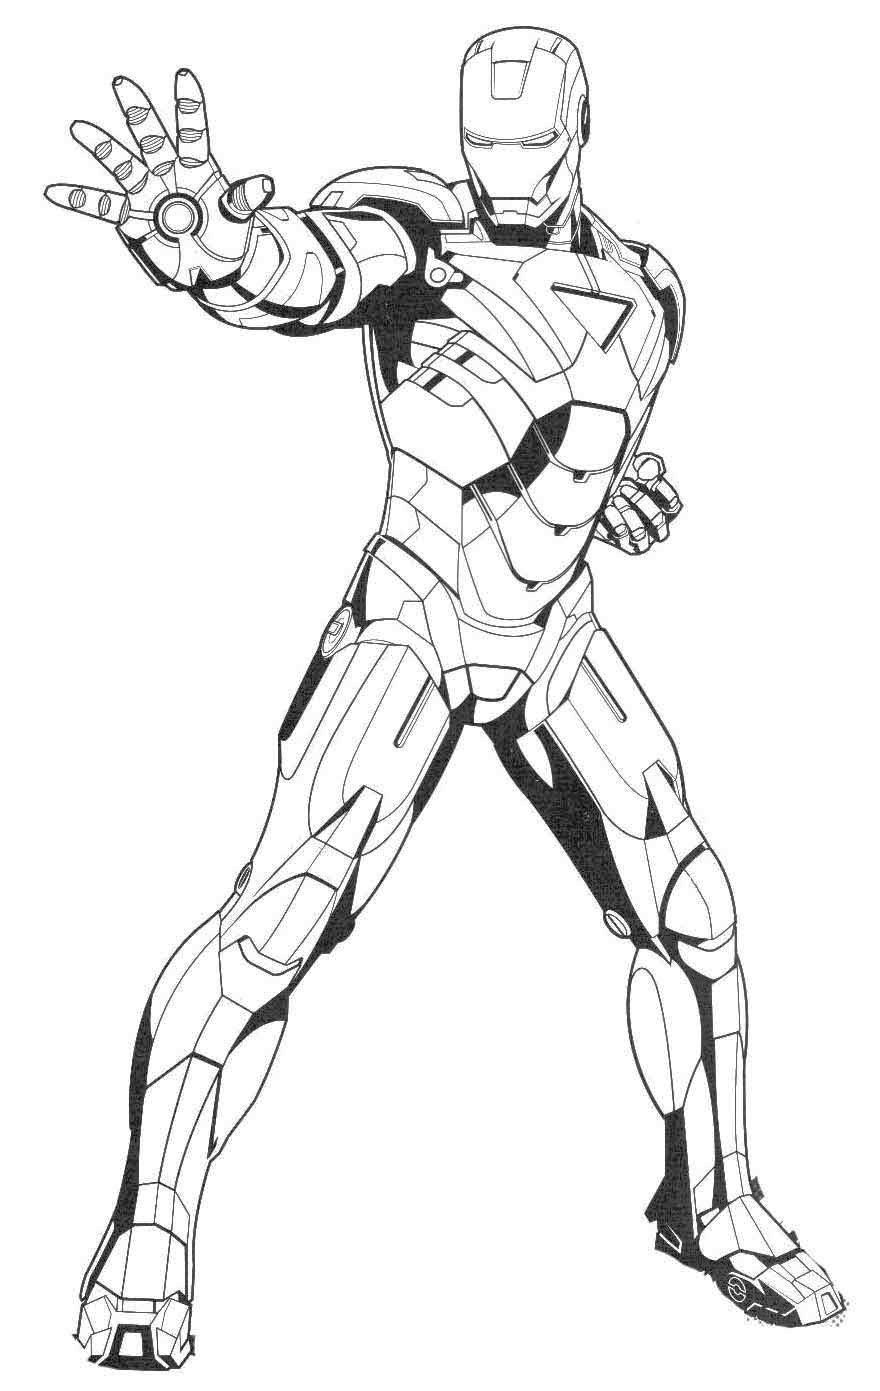 Iron Man Ready Ultimate Weapon Coloring Page | *Coloring Pages * | Pinterest | Weapons And Craft